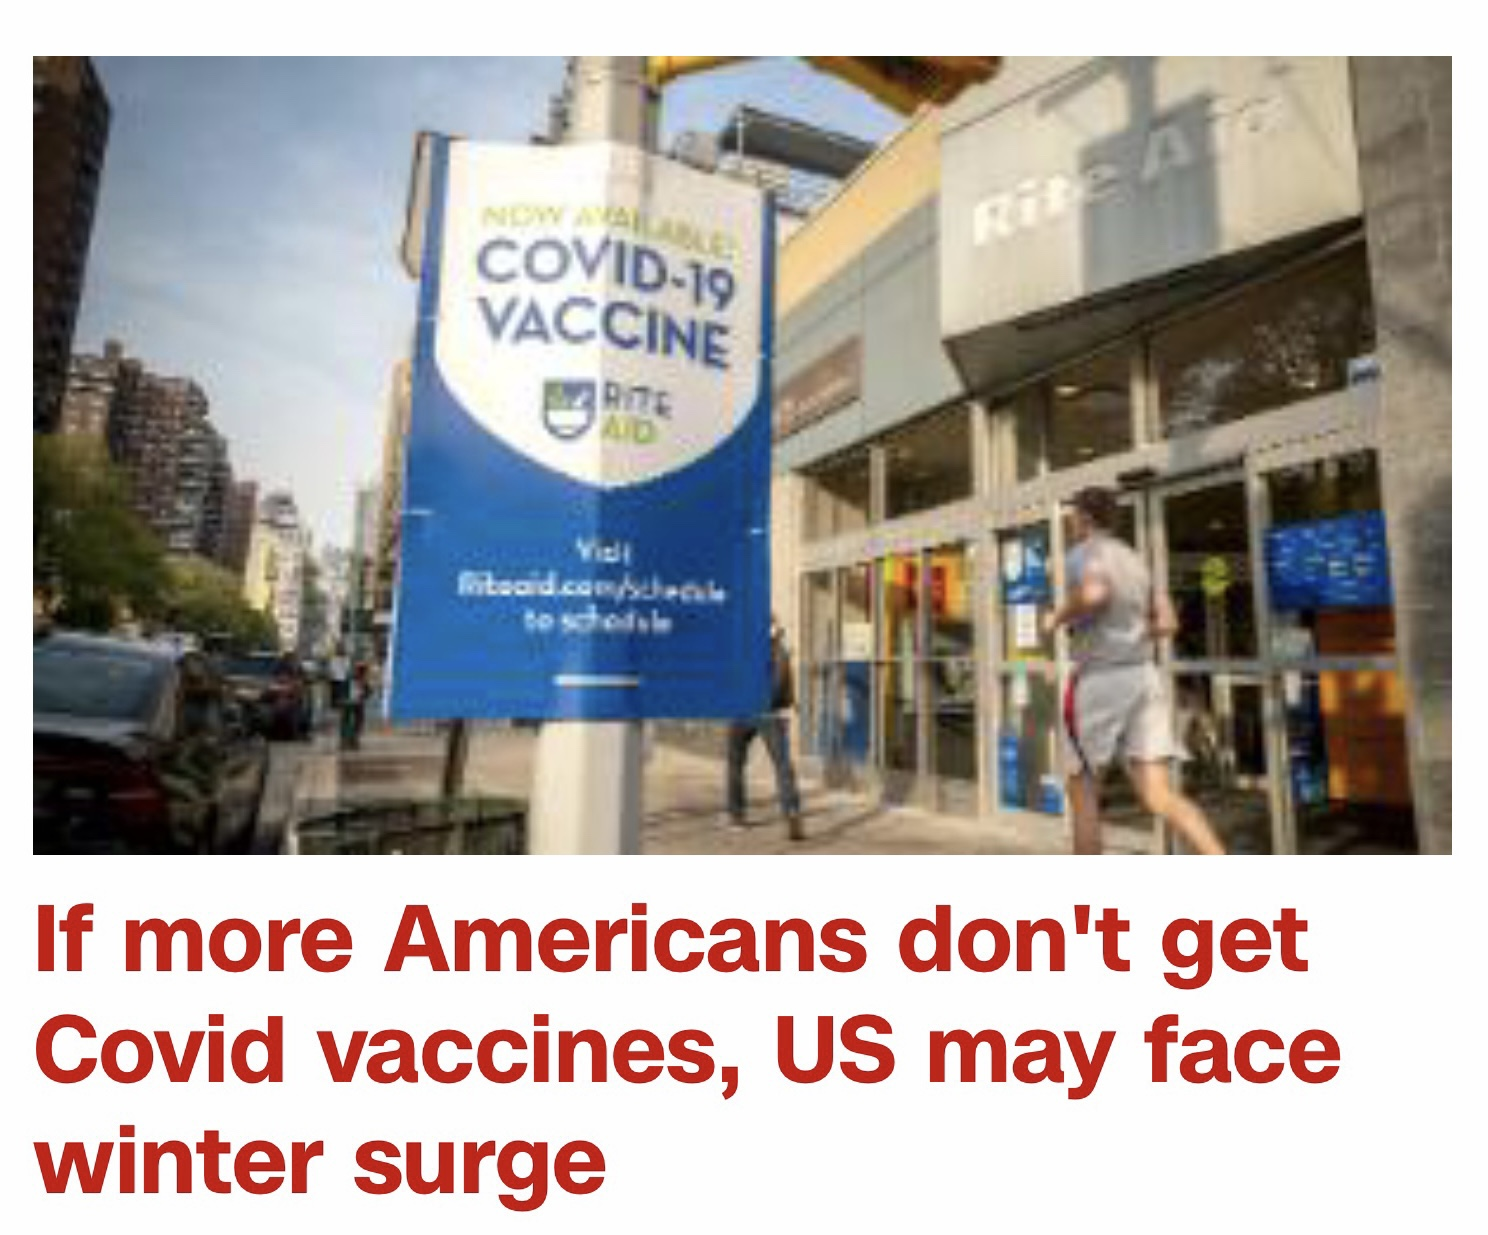 """""""If more Americans don't get Covid vaccines, US may face winter surge"""" -- CNN article"""